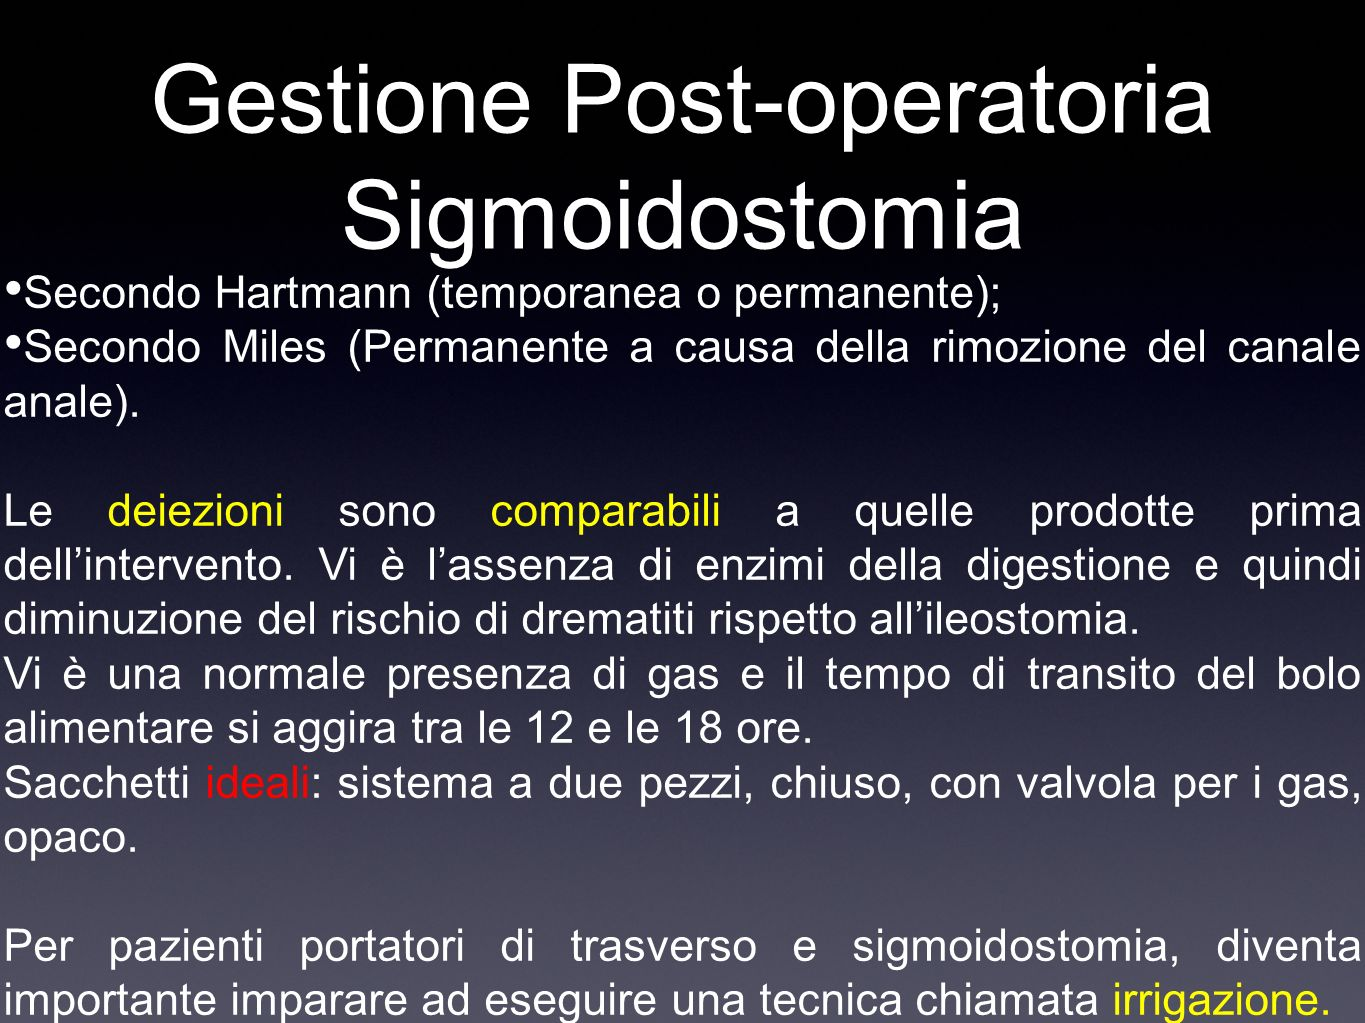 Gestione Post-operatoria Sigmoidostomia